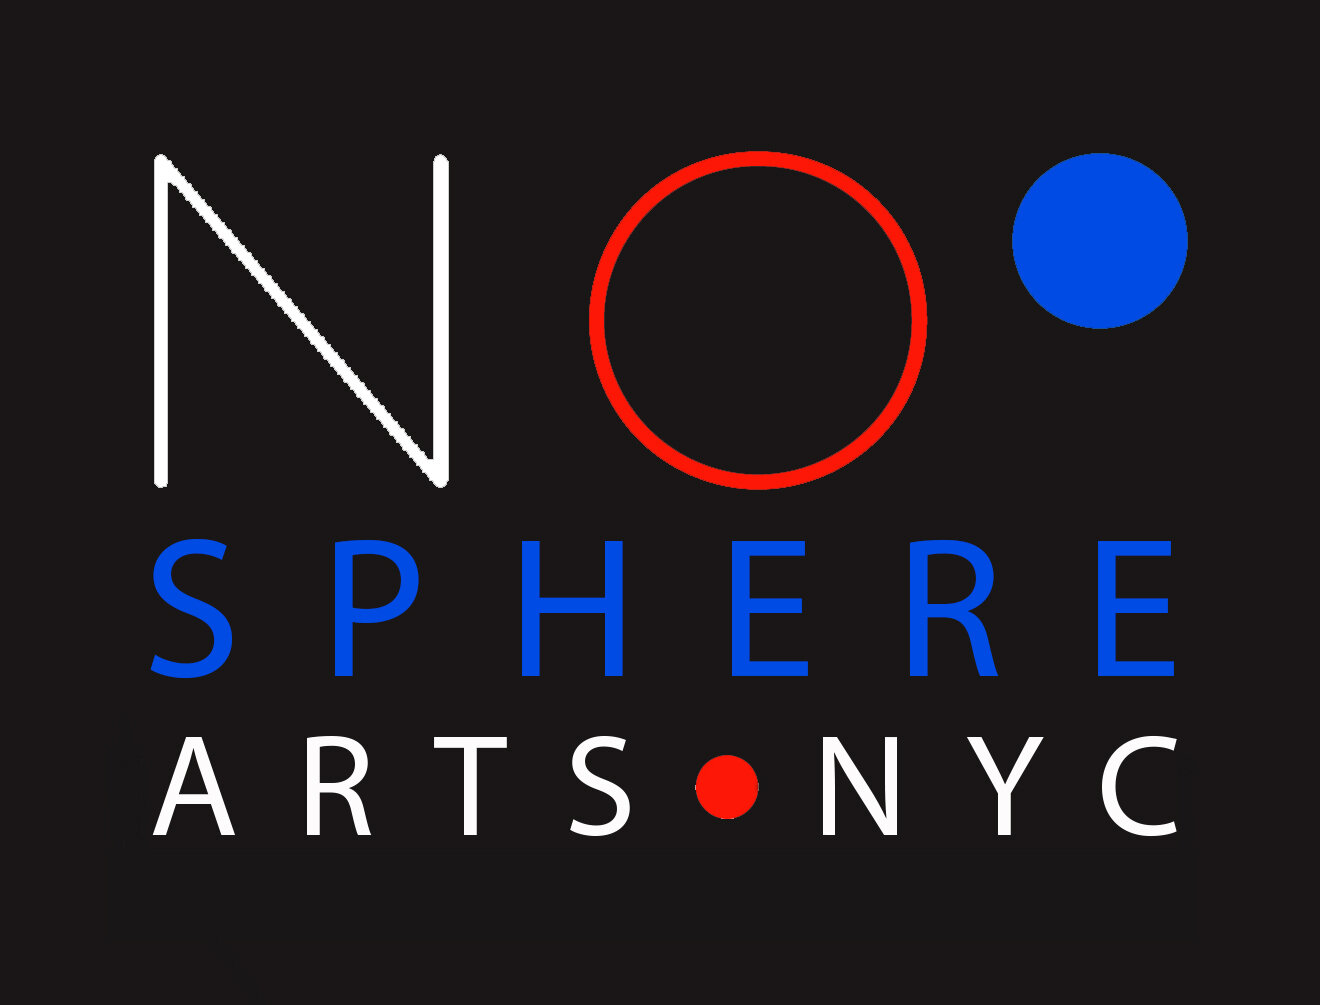 NOoSPHERE Arts.NYC